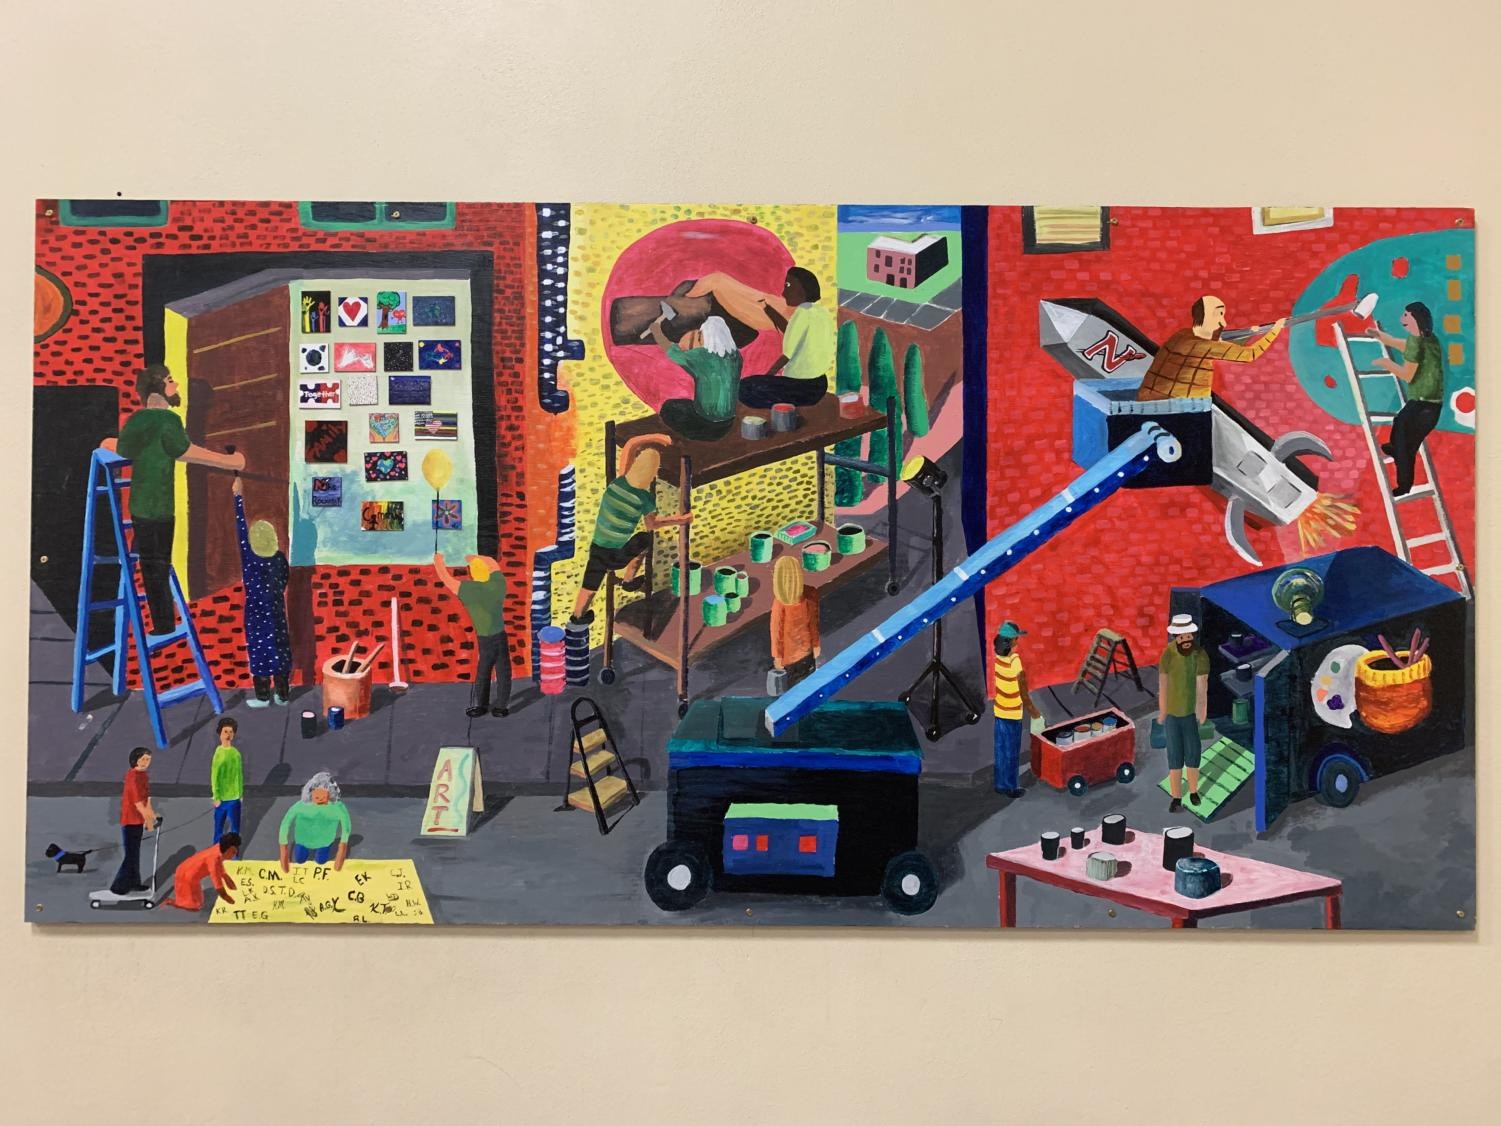 Dorschner, art teacher, says this painting shows how artists can transform communities with beautiful murals. In the painting, it portrays a wide variety of perspectives that take viewer's eyes through several murals in progress, being done by devoted artists.